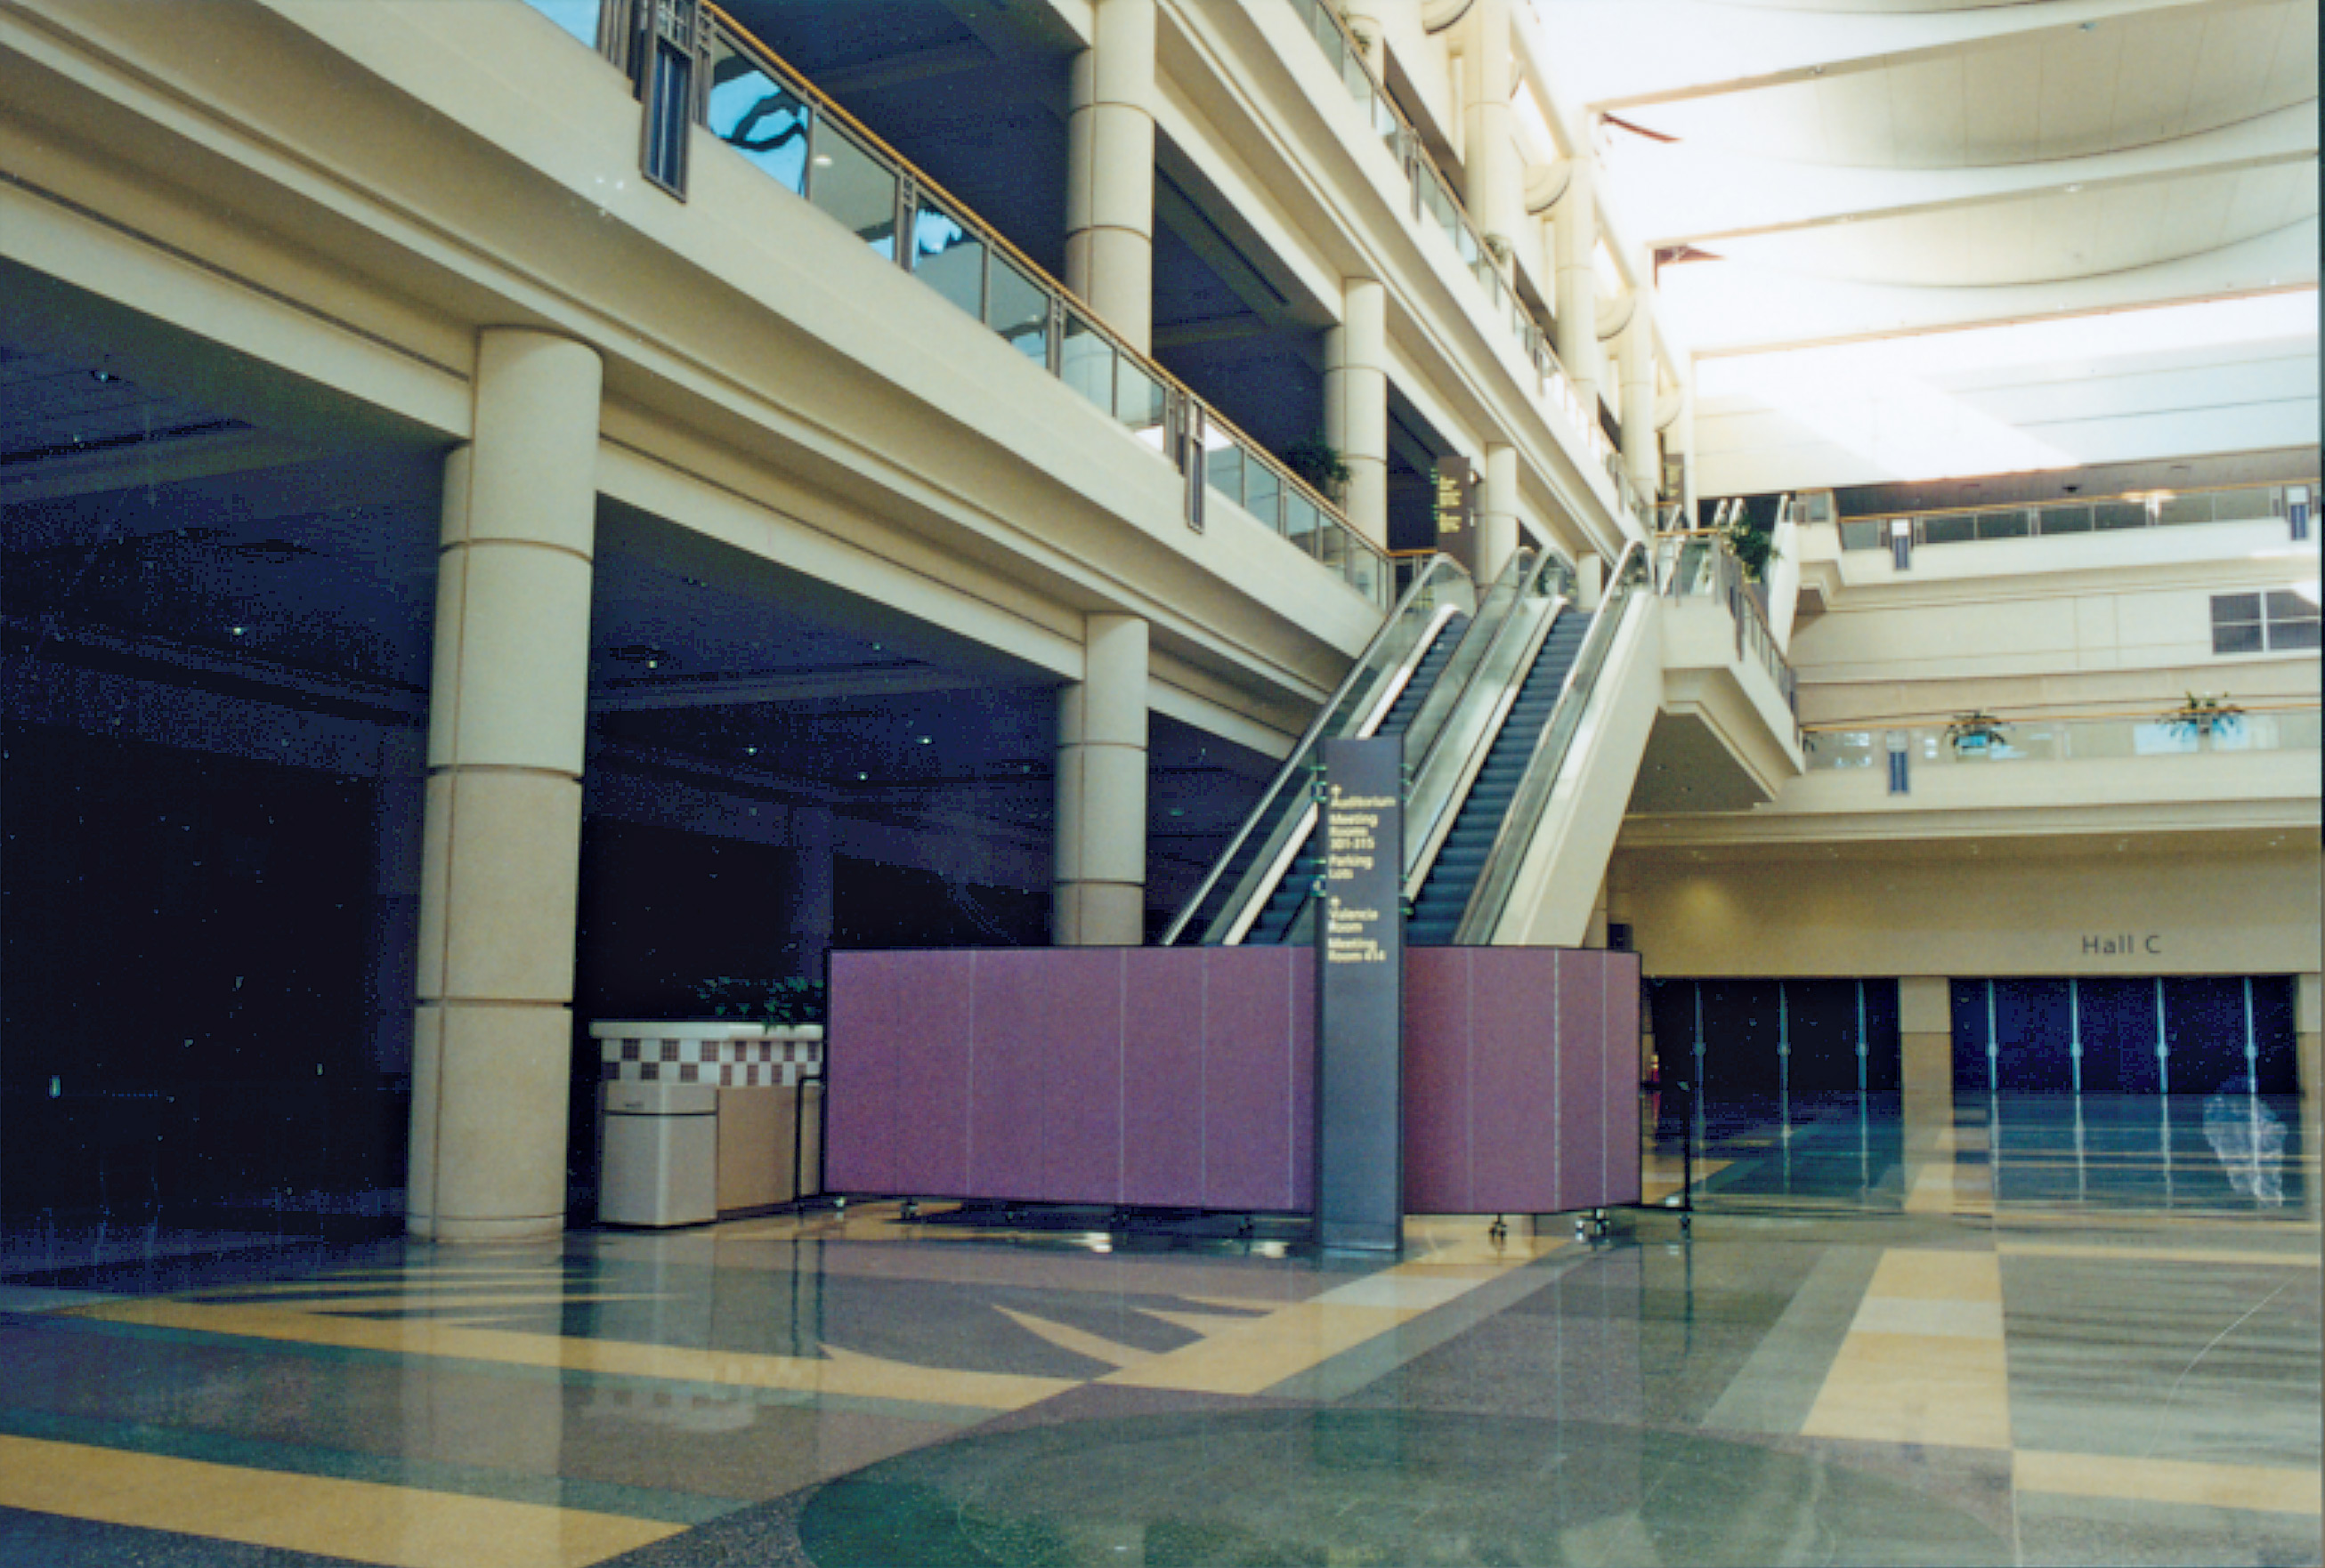 A room divider hides repairs being down on an escalator in a large convention center lobby